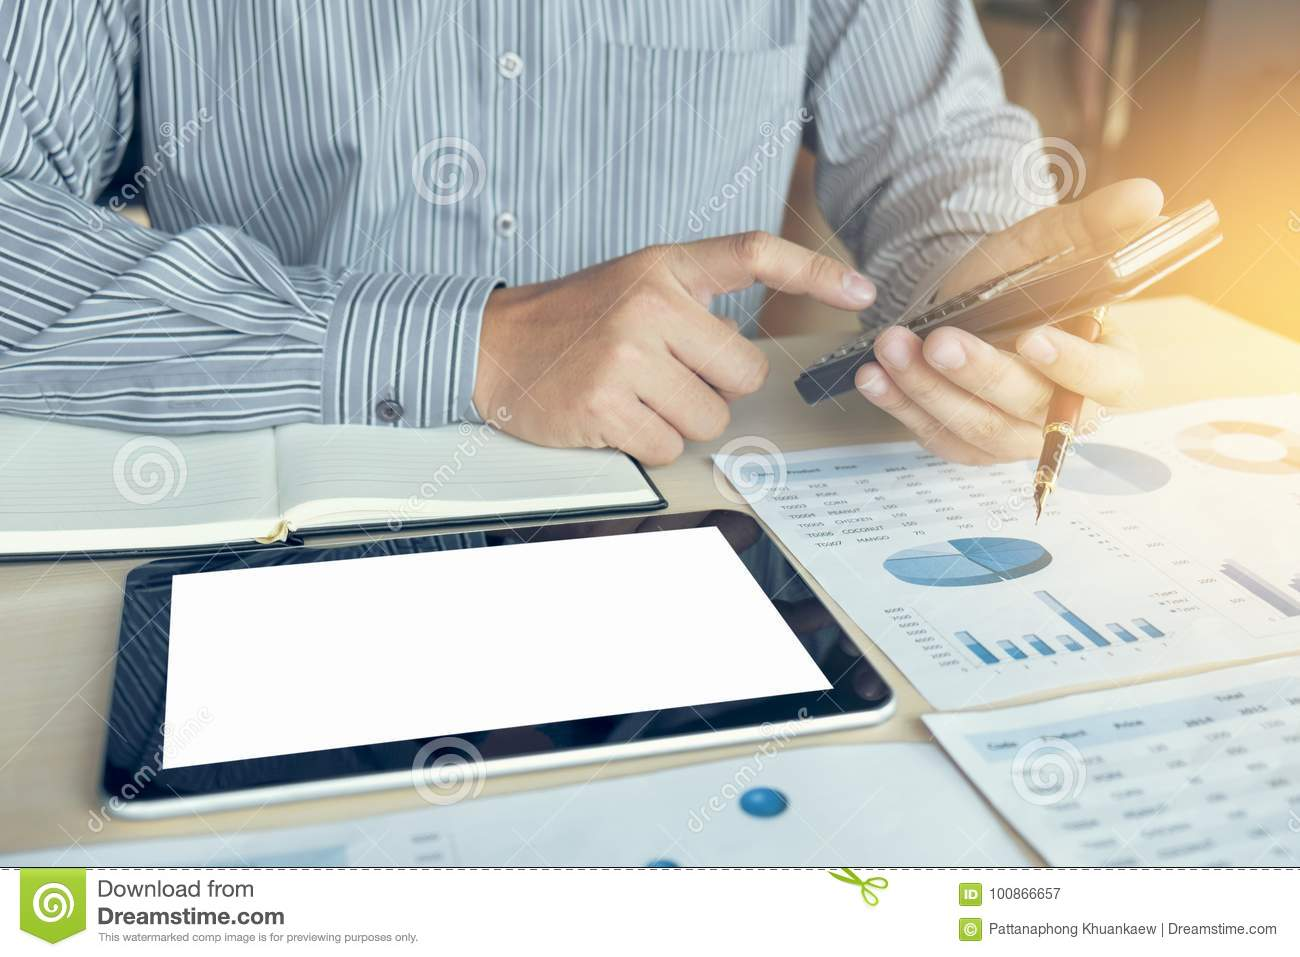 Business man or accountant working Financial investment on calculator with calculate Analyze business and market growth on